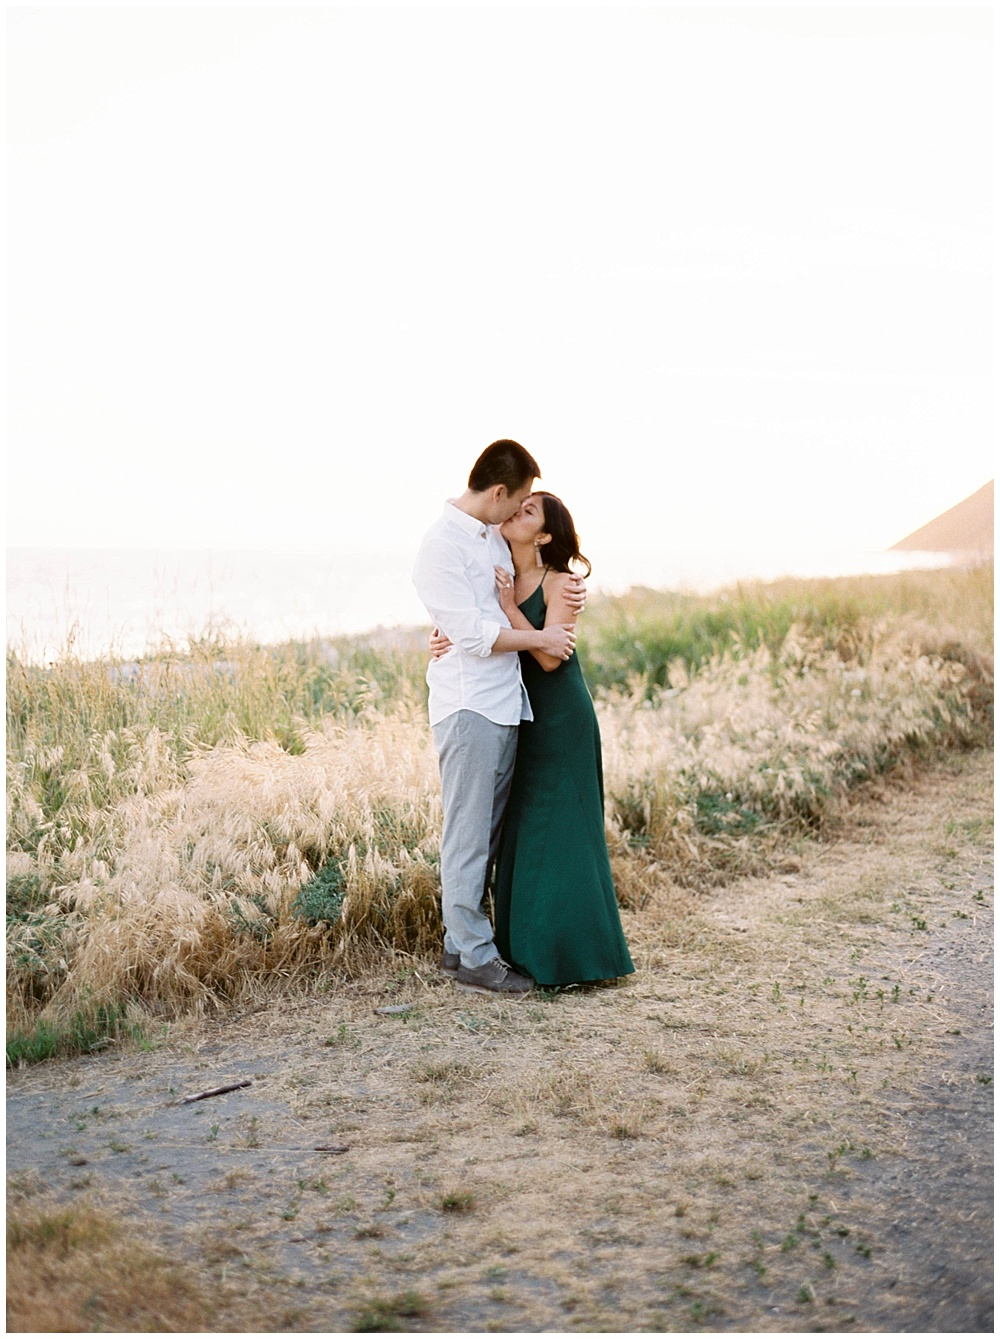 Fine Art Film Wedding Photographer | Sarah Carpenter Wedding Photography | Seattle Weddings & Destination Weddings